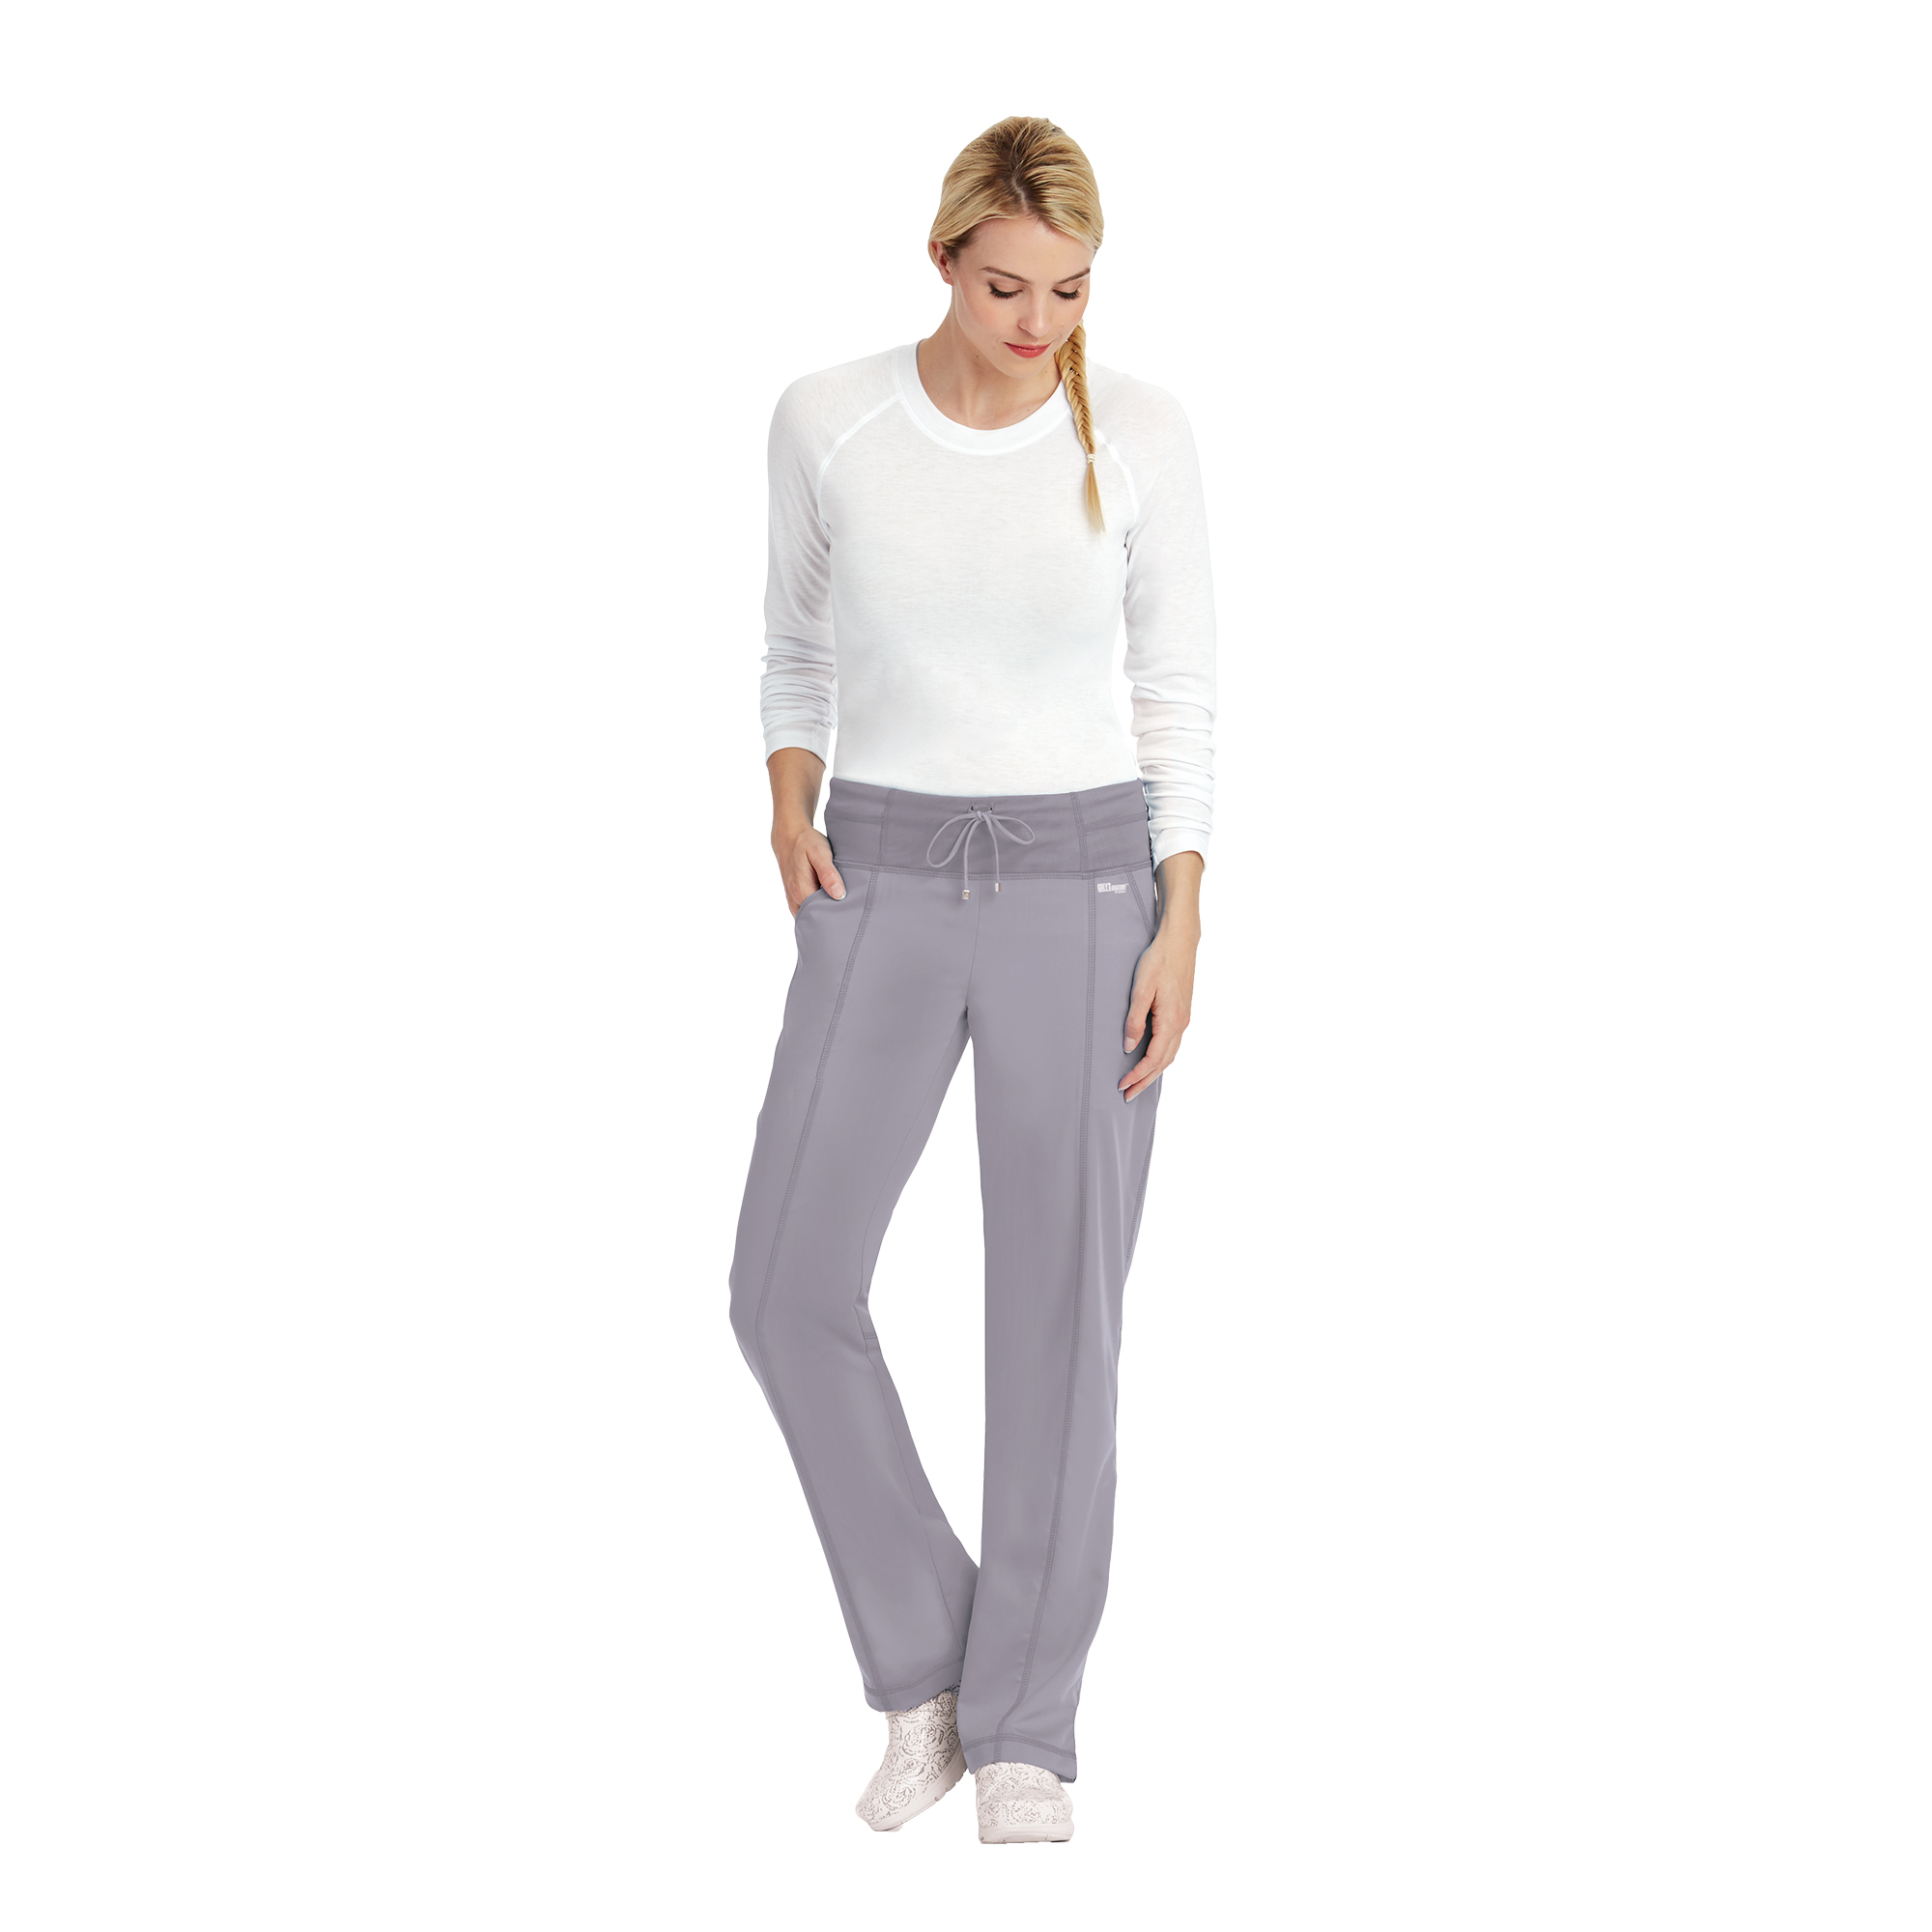 Buy 4pkt Low Rise Wide Waist Pant - Greys Anatomy Active Online at ...